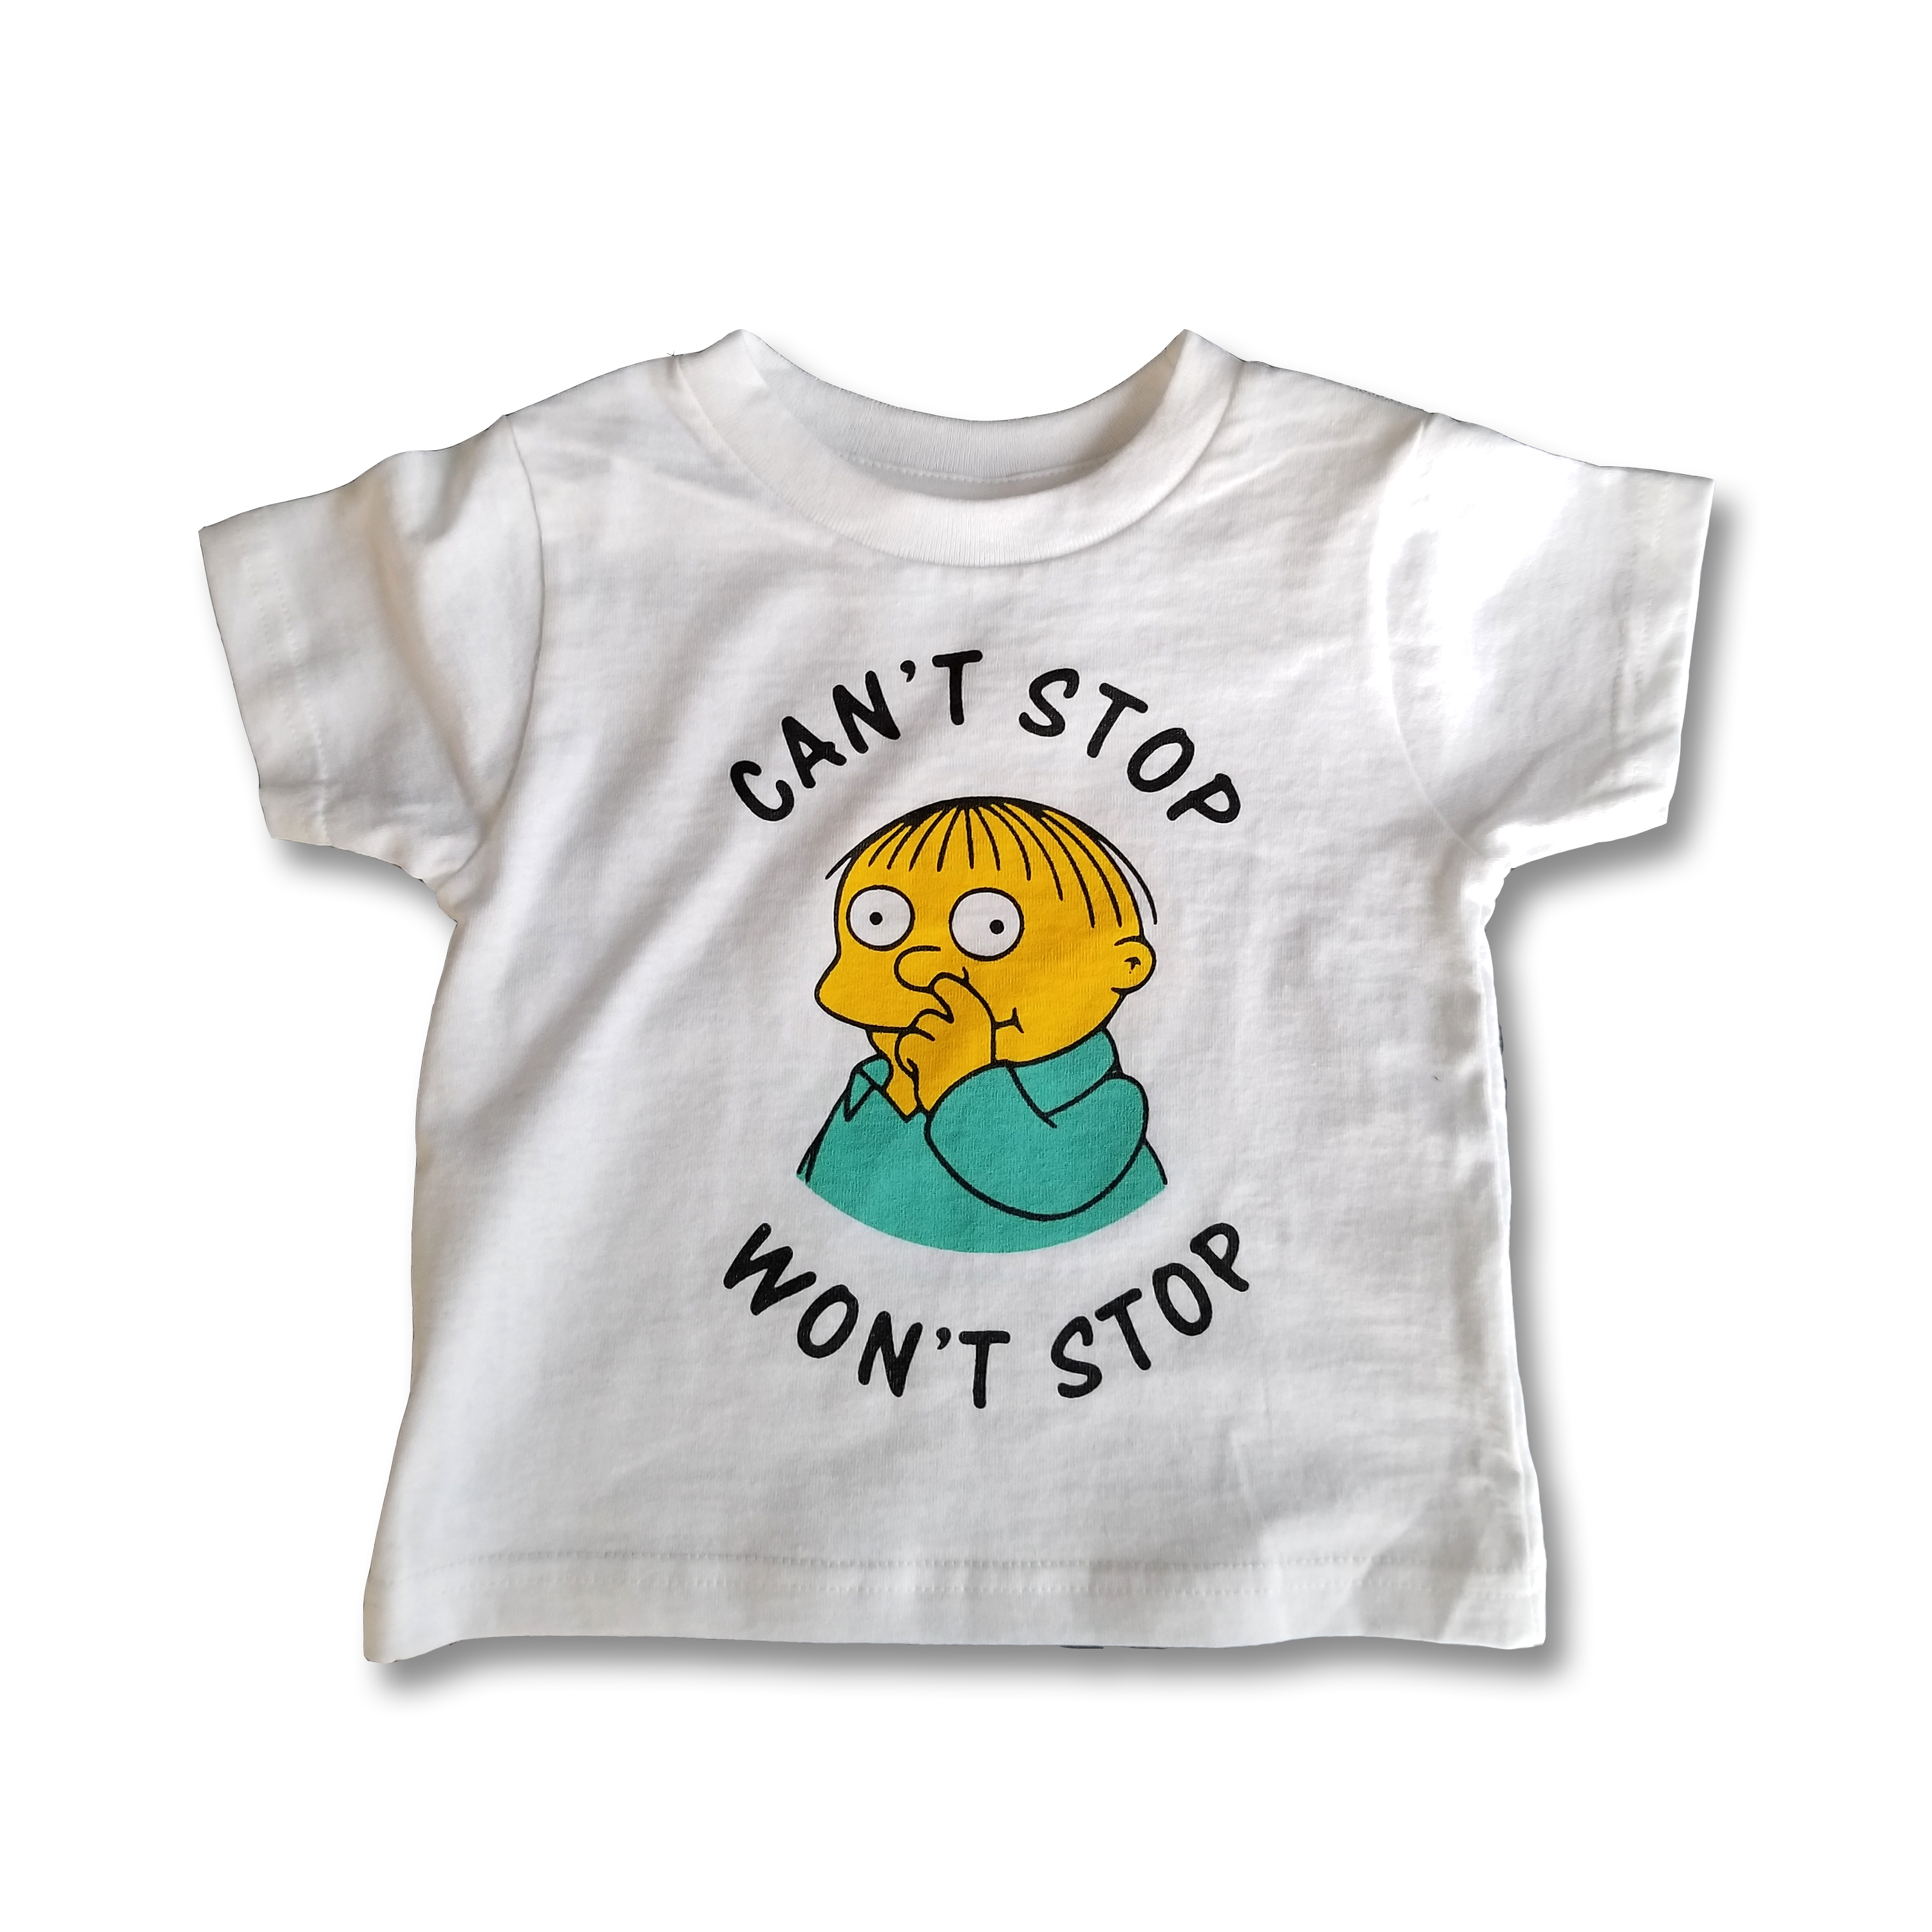 c0513fefb Can't Stop Wont Stop Toddler Tee · Stuntin · Online Store Powered by ...